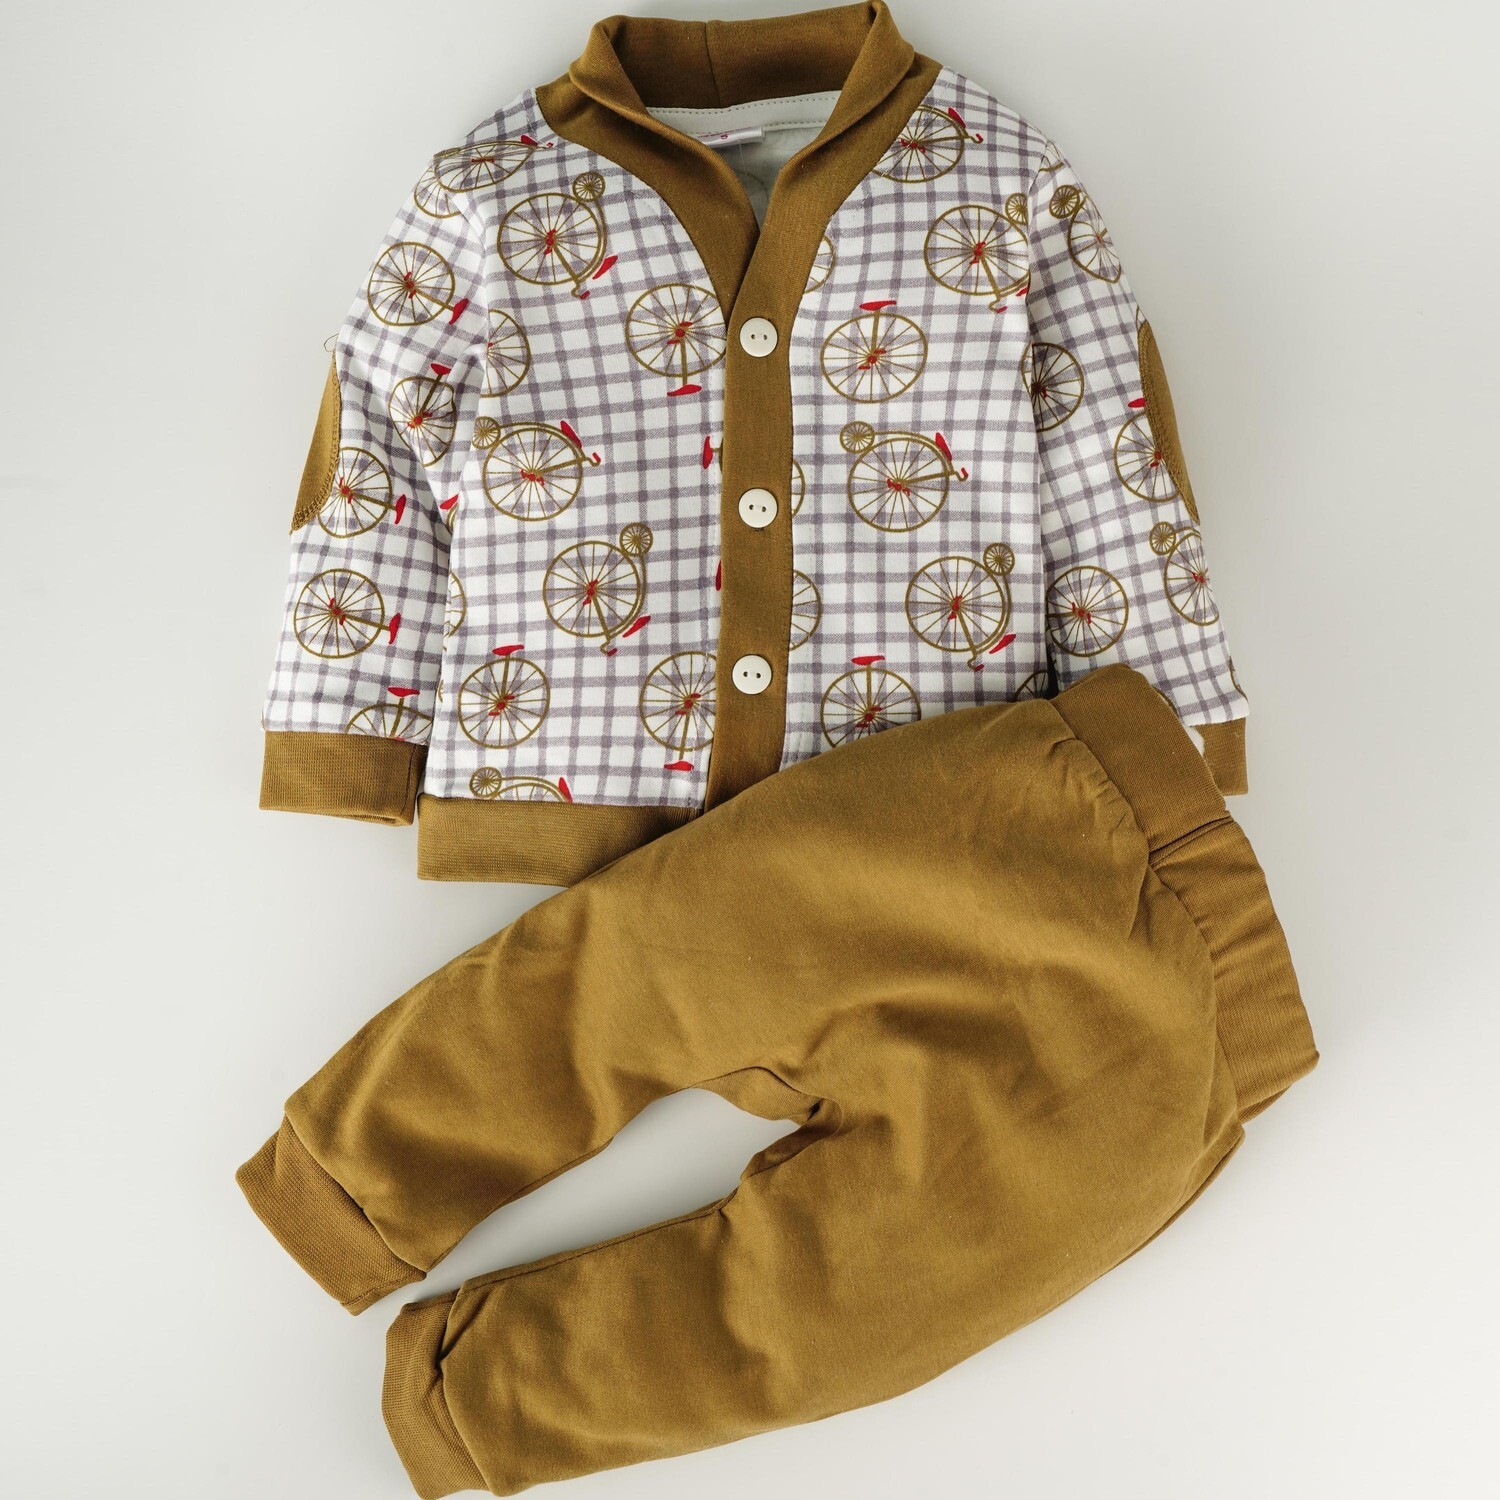 Ryker Gold Printed Full Sleeve Top with Dull Gold Long Pants XXL (24-30 Months)